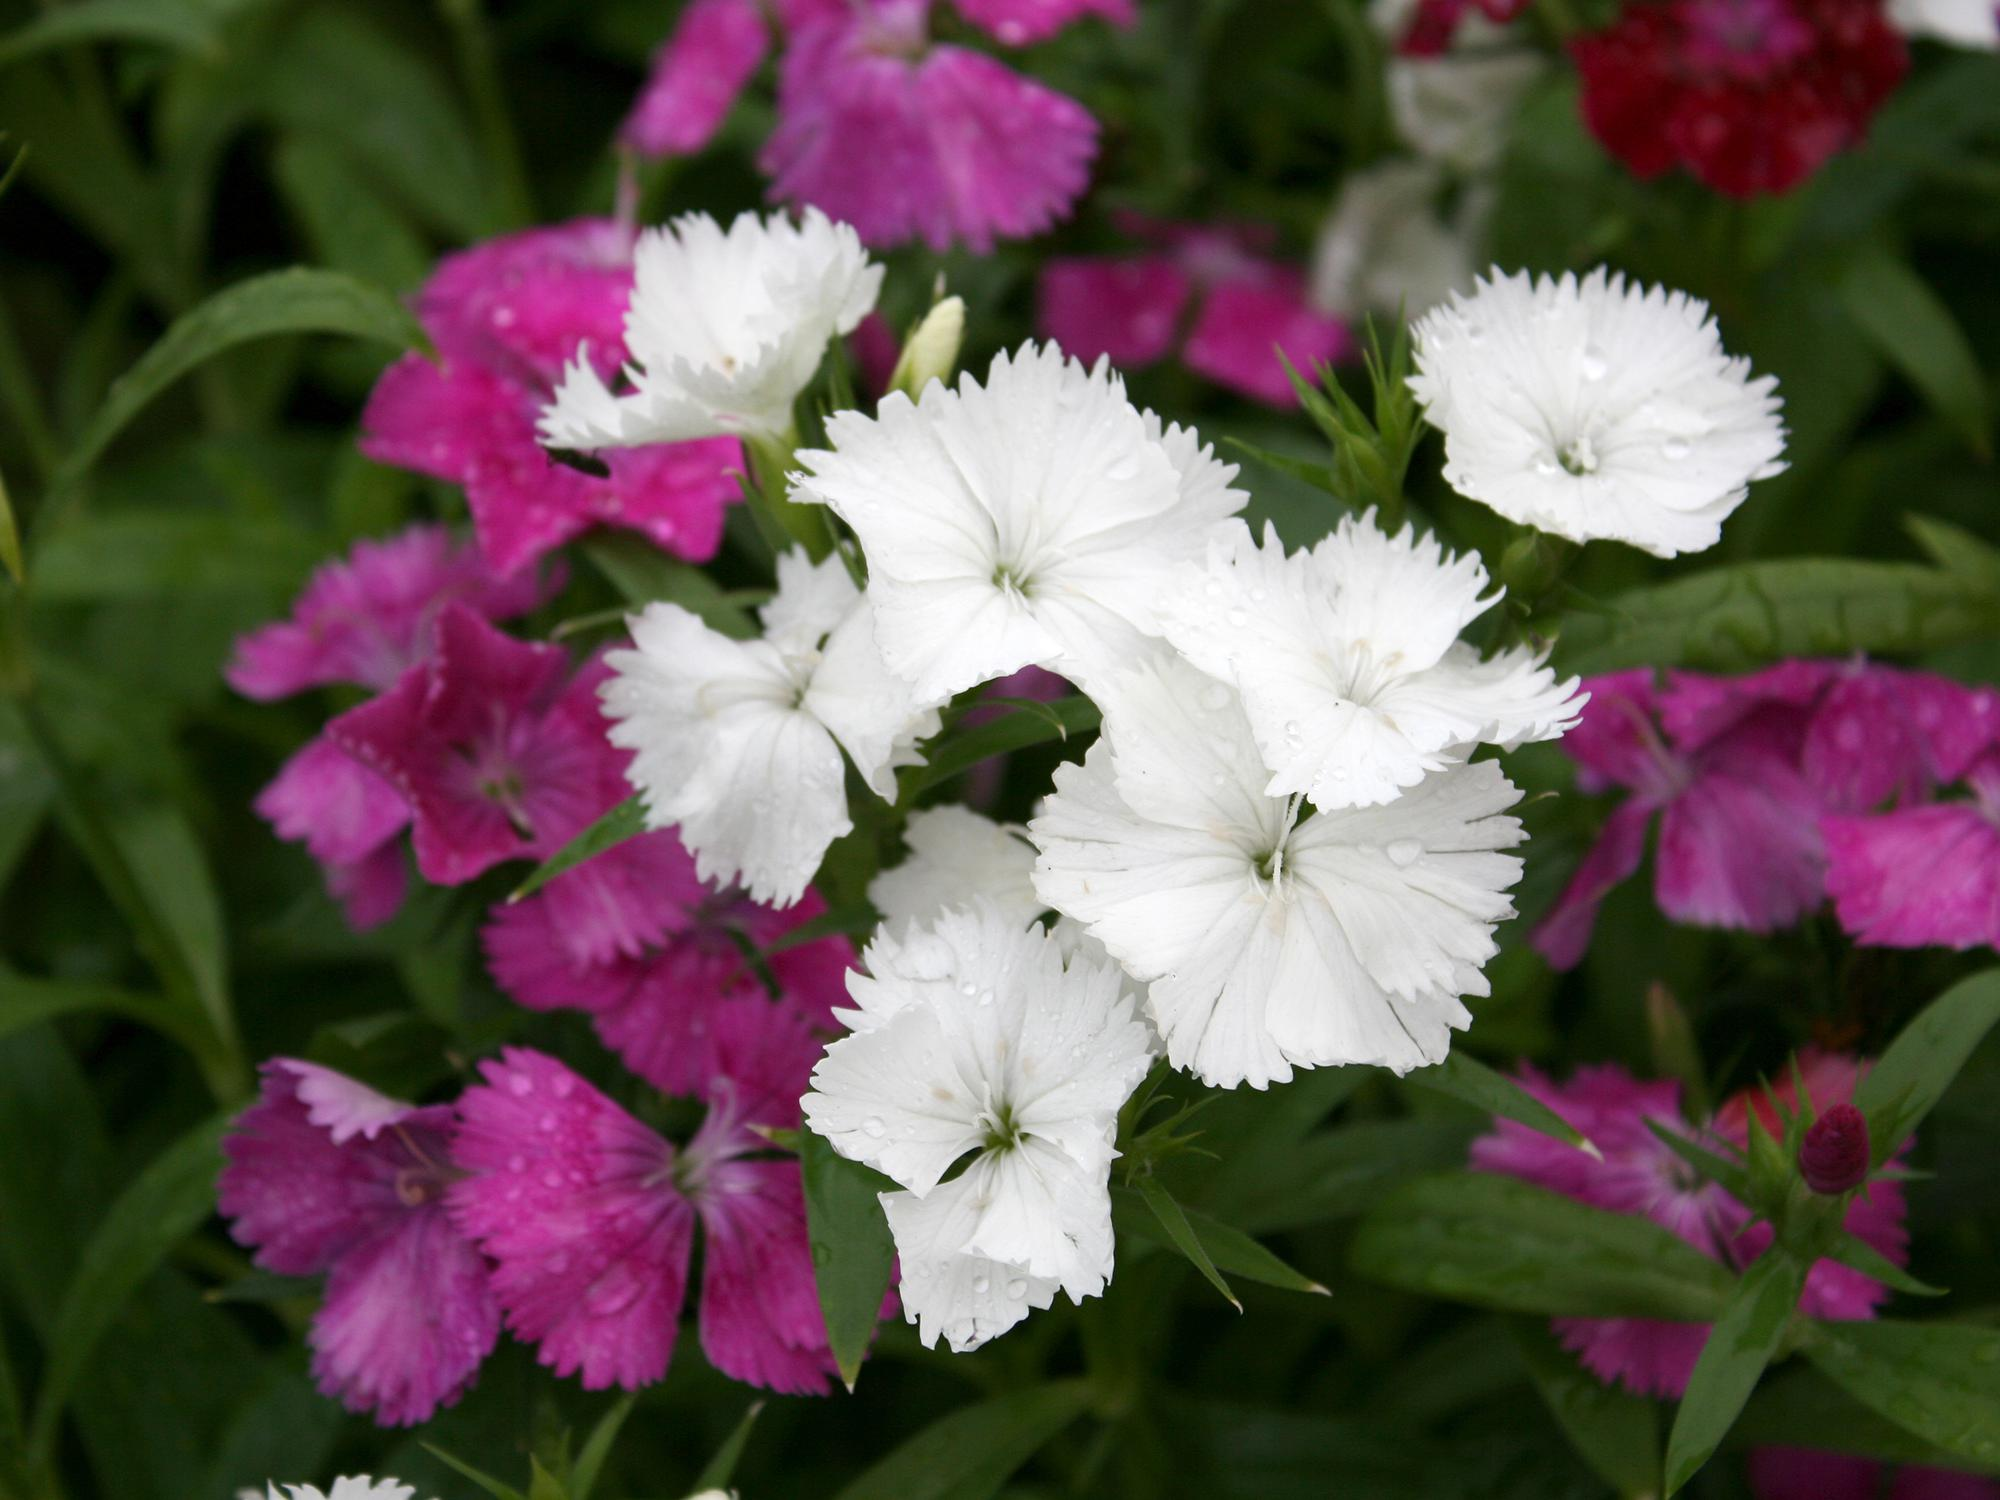 A close-up of white and pink dianthus blooms.